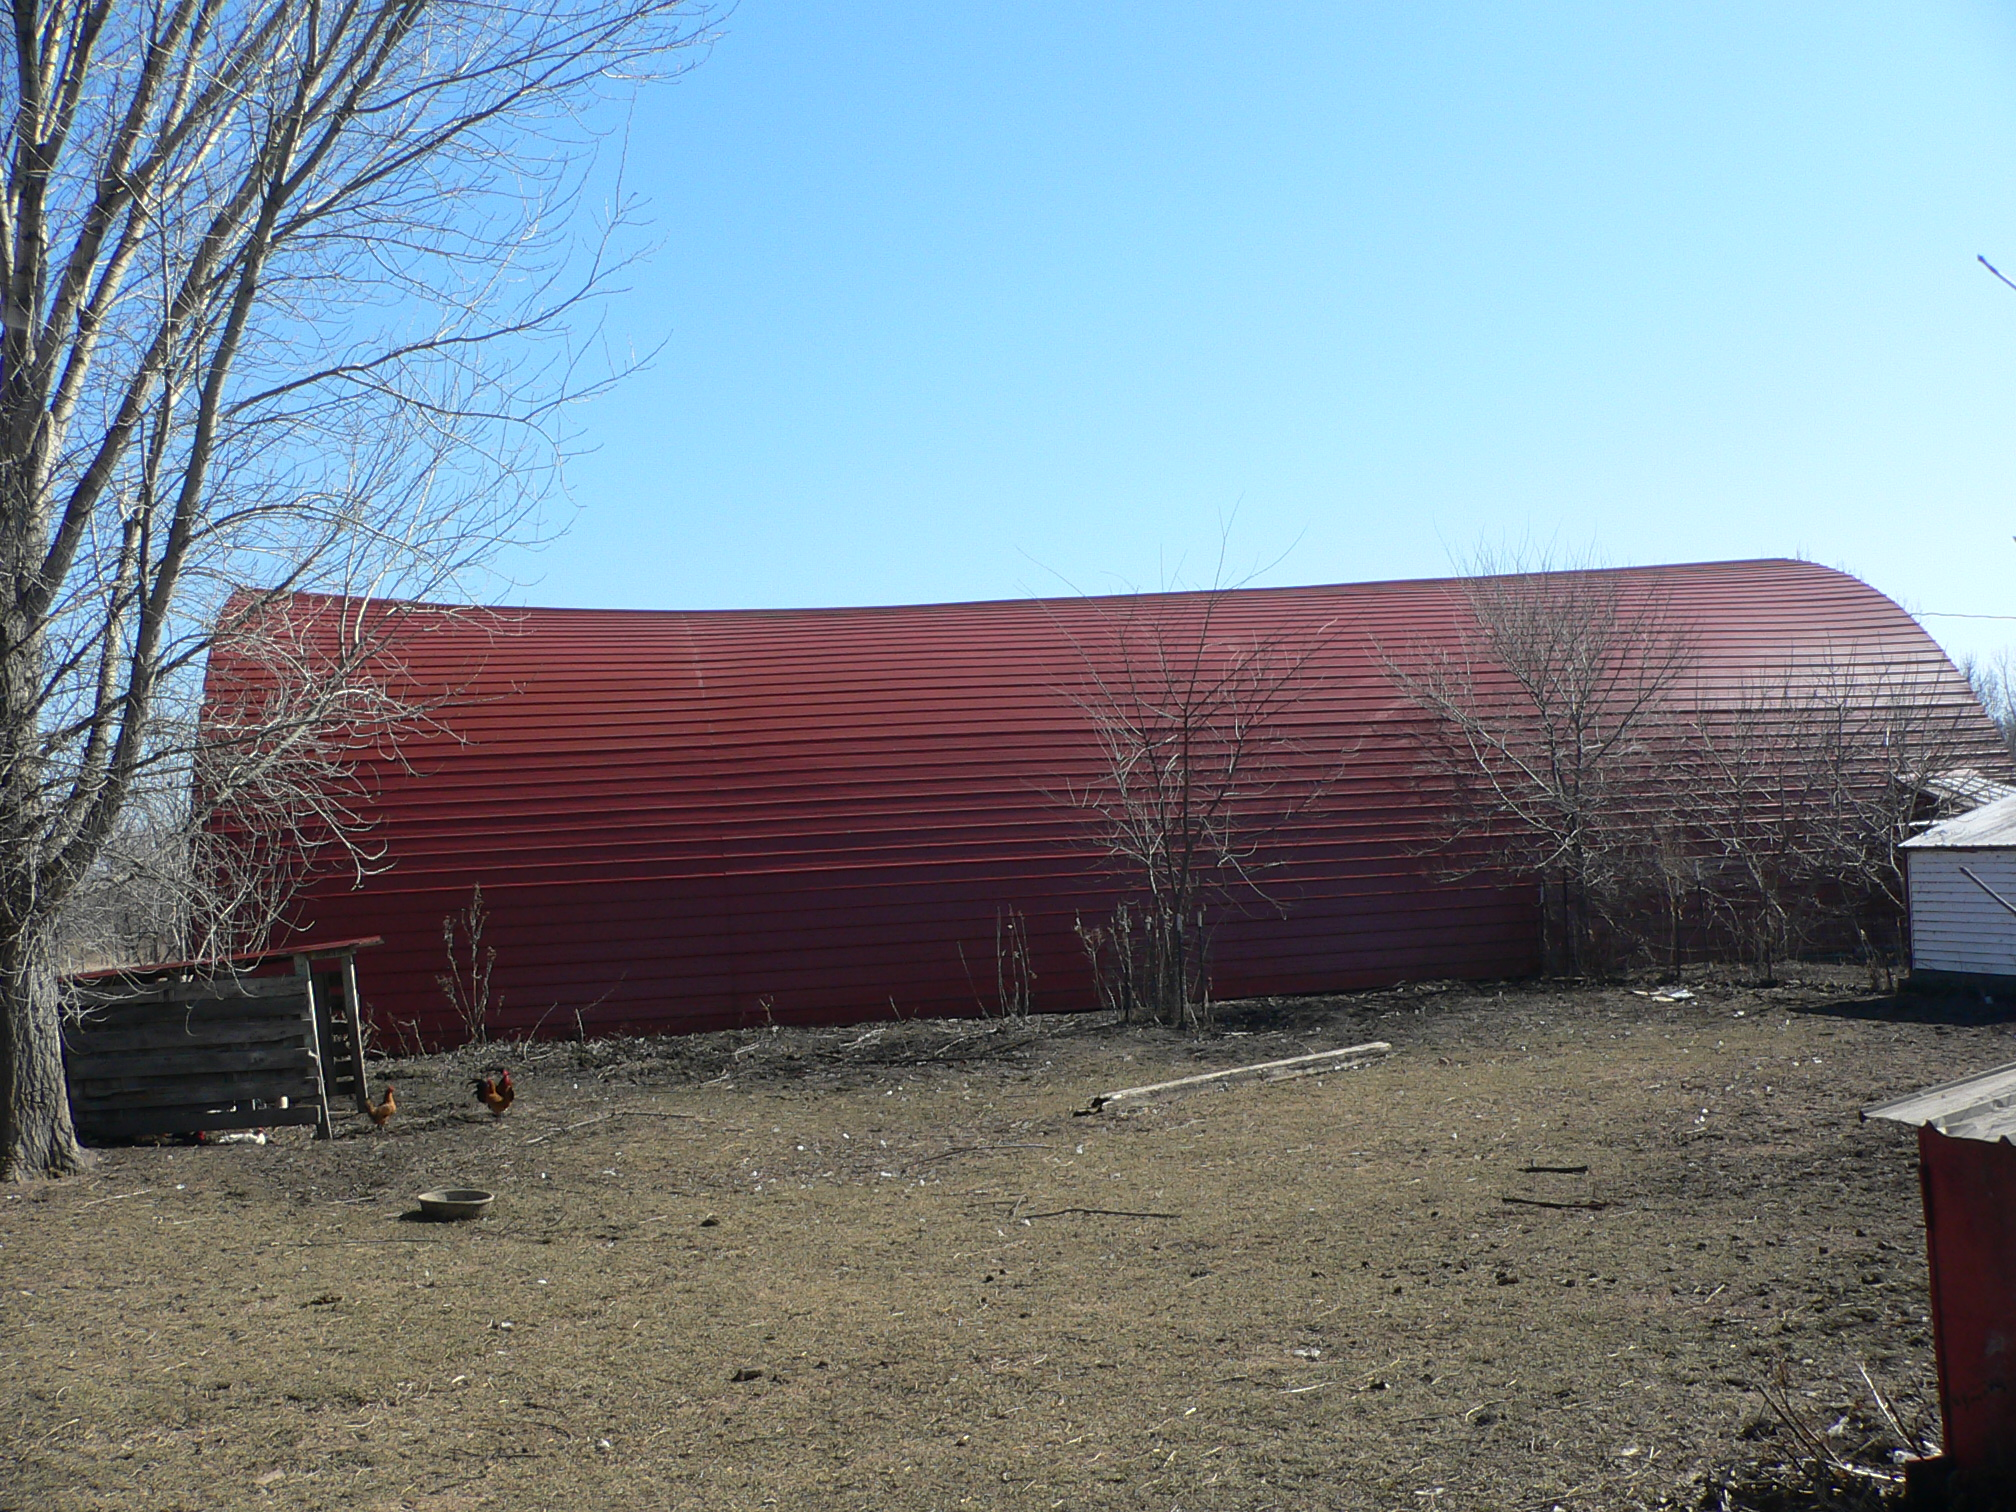 40 X 80 Ft Quonset Roof Sagging In Middlethe Final Chapter 39